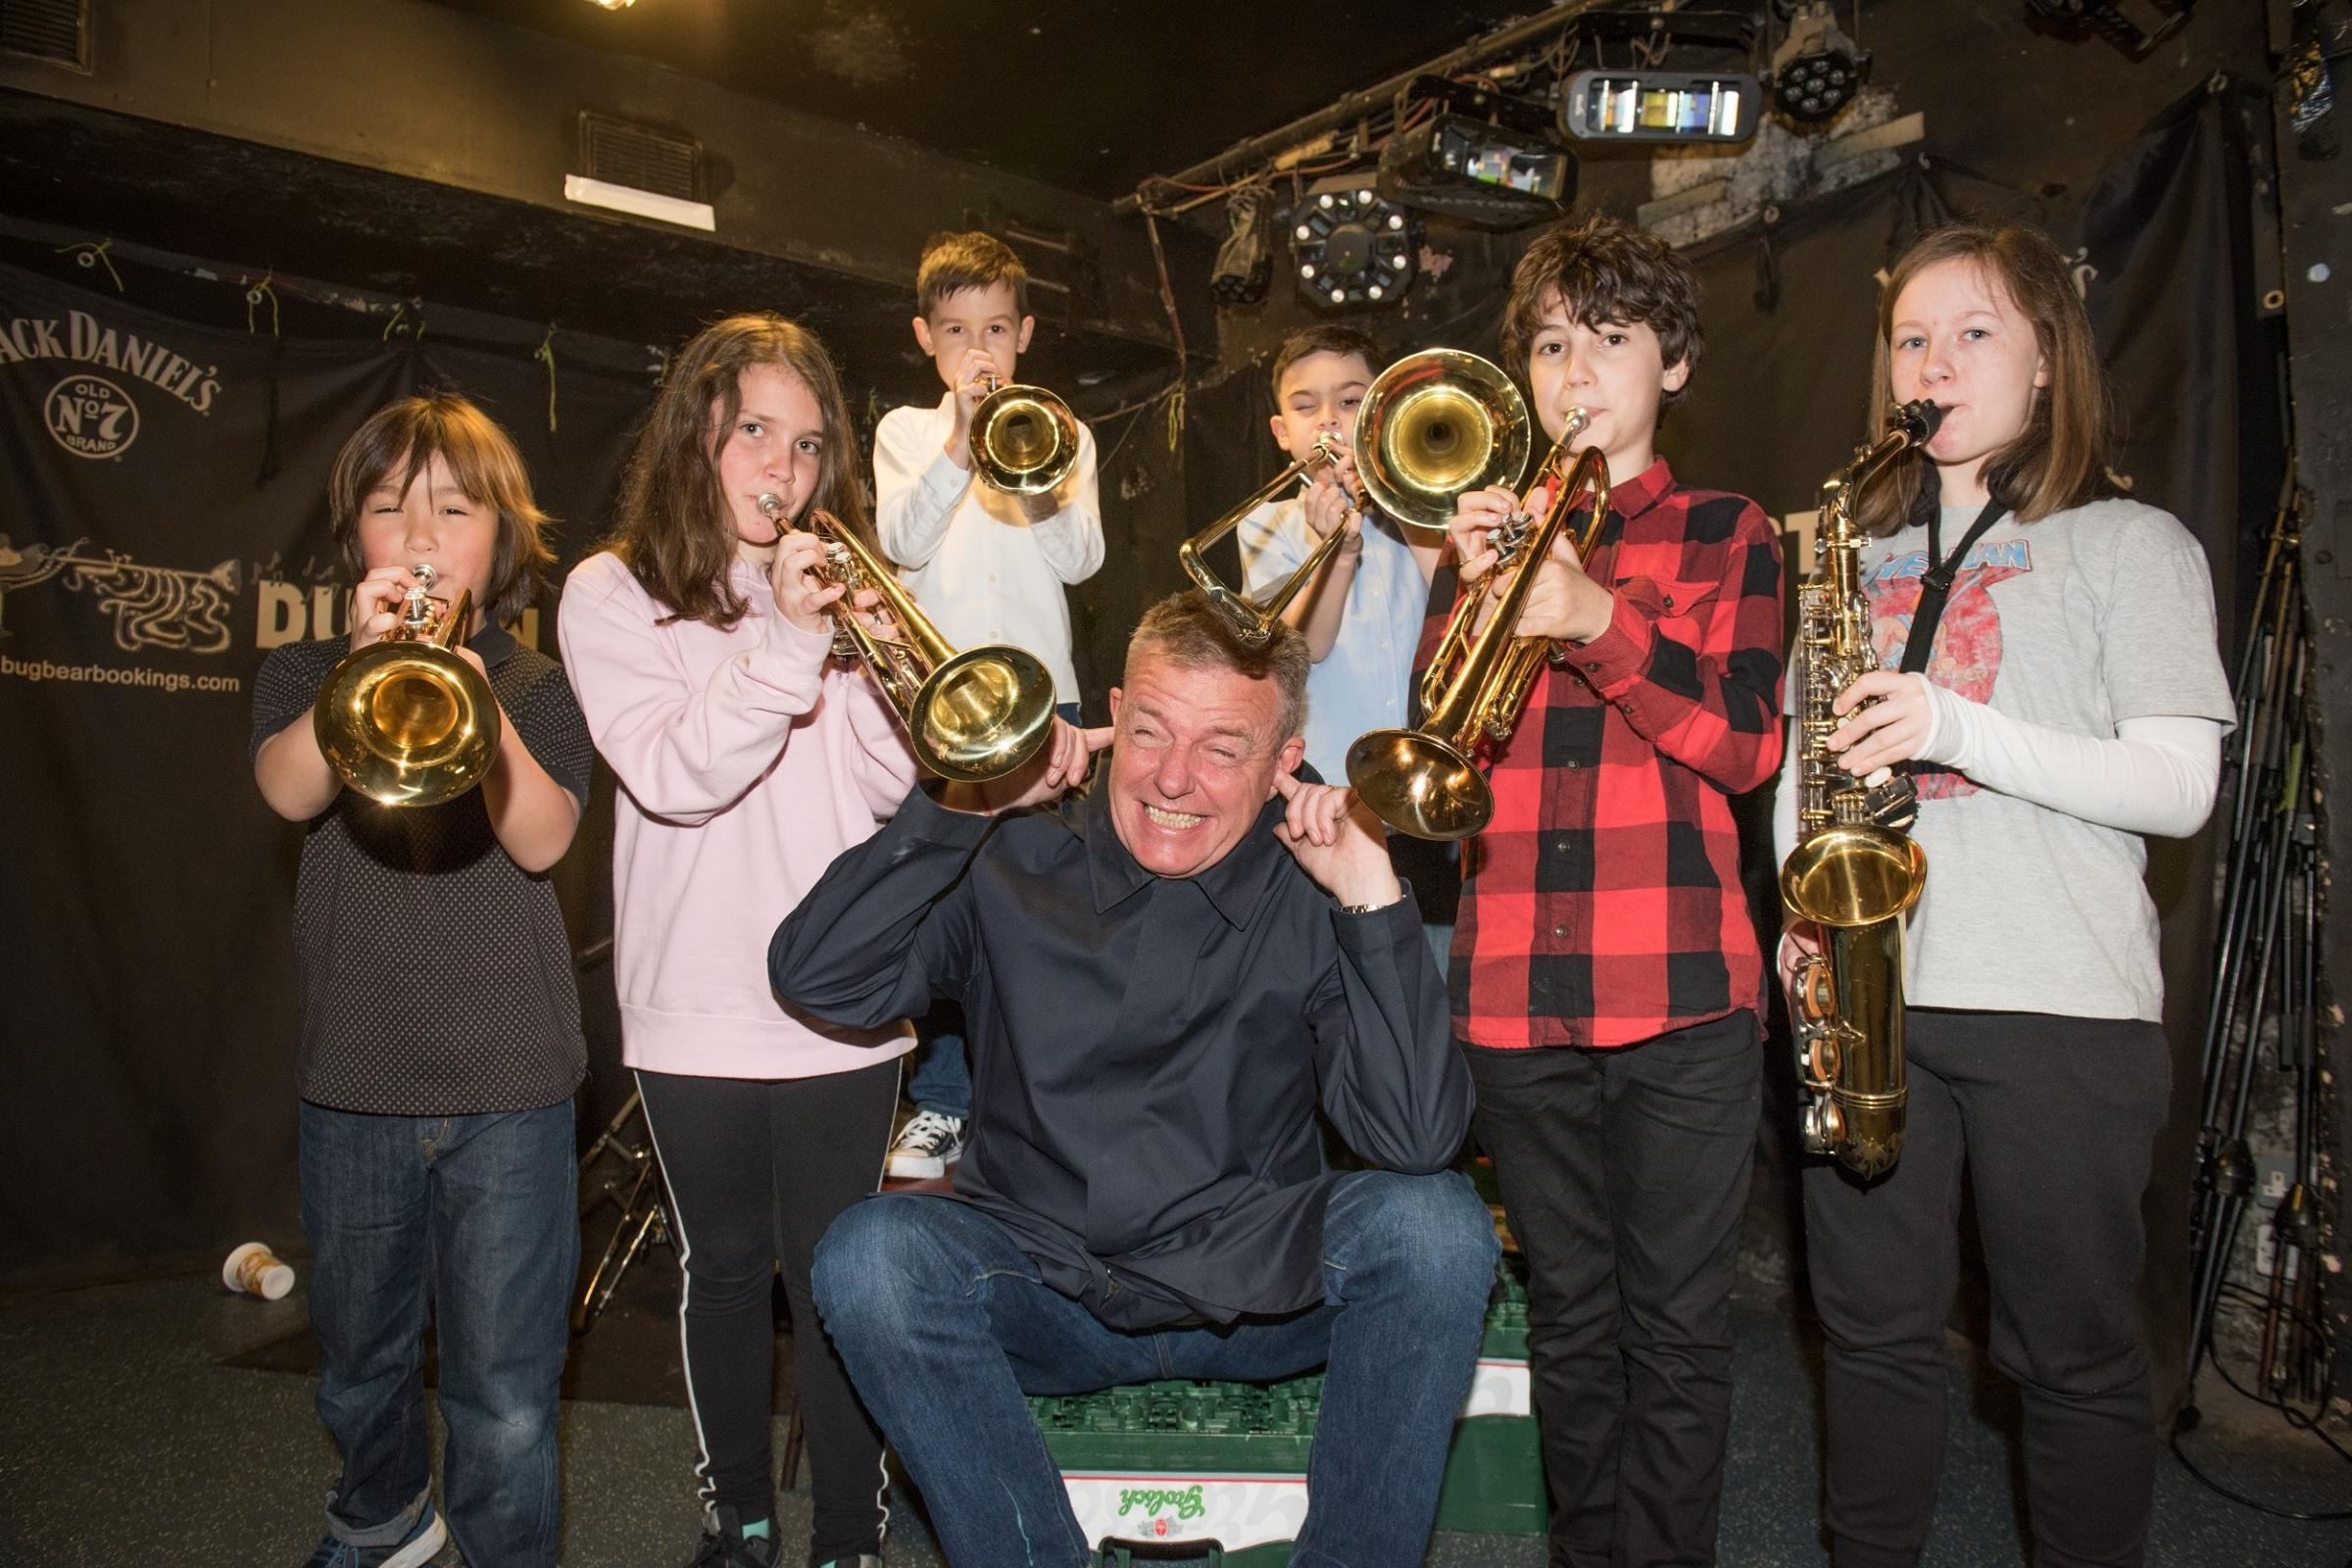 Suggs with some young musicians